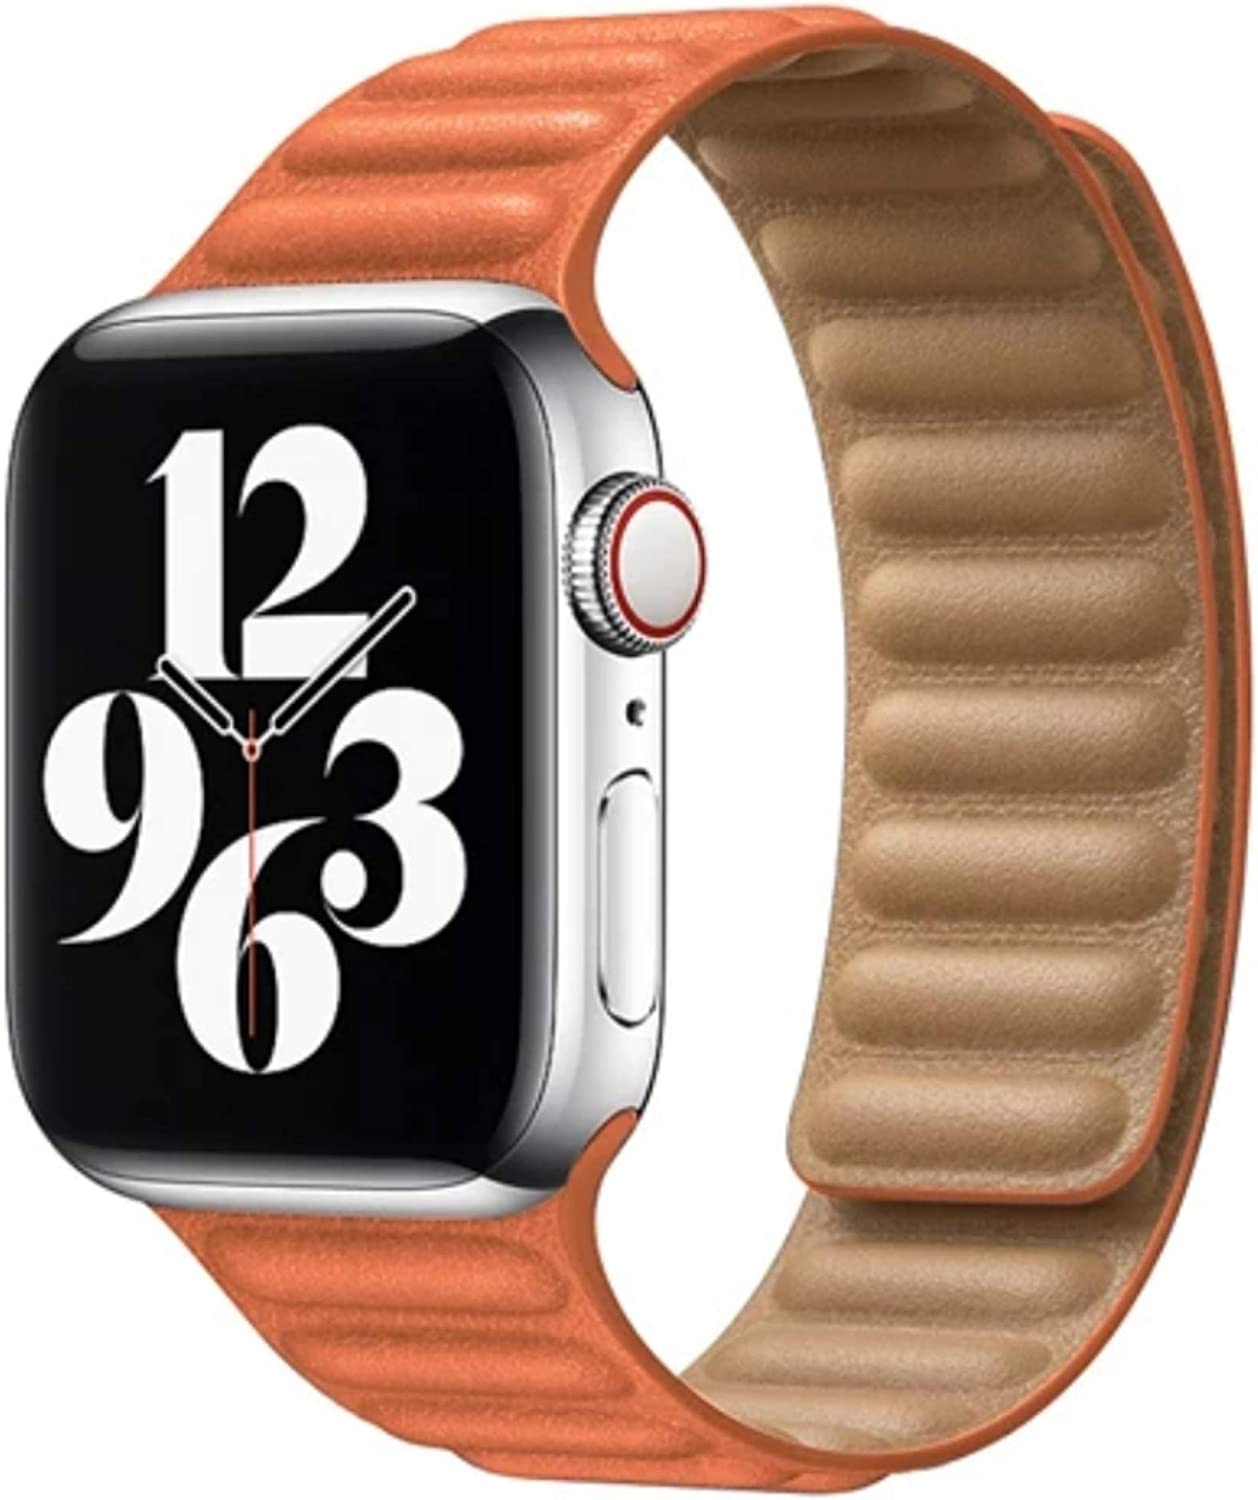 JYF Leather Link Band Compatible with Apple Watch Band 38mm 40mm 42mm 44mm iWatch Series 6 5 SE 4 3 2 1 Strap, Latest Magnetic Closures Stainless Steel Flexible Molded Adjustable Wrist Replacement